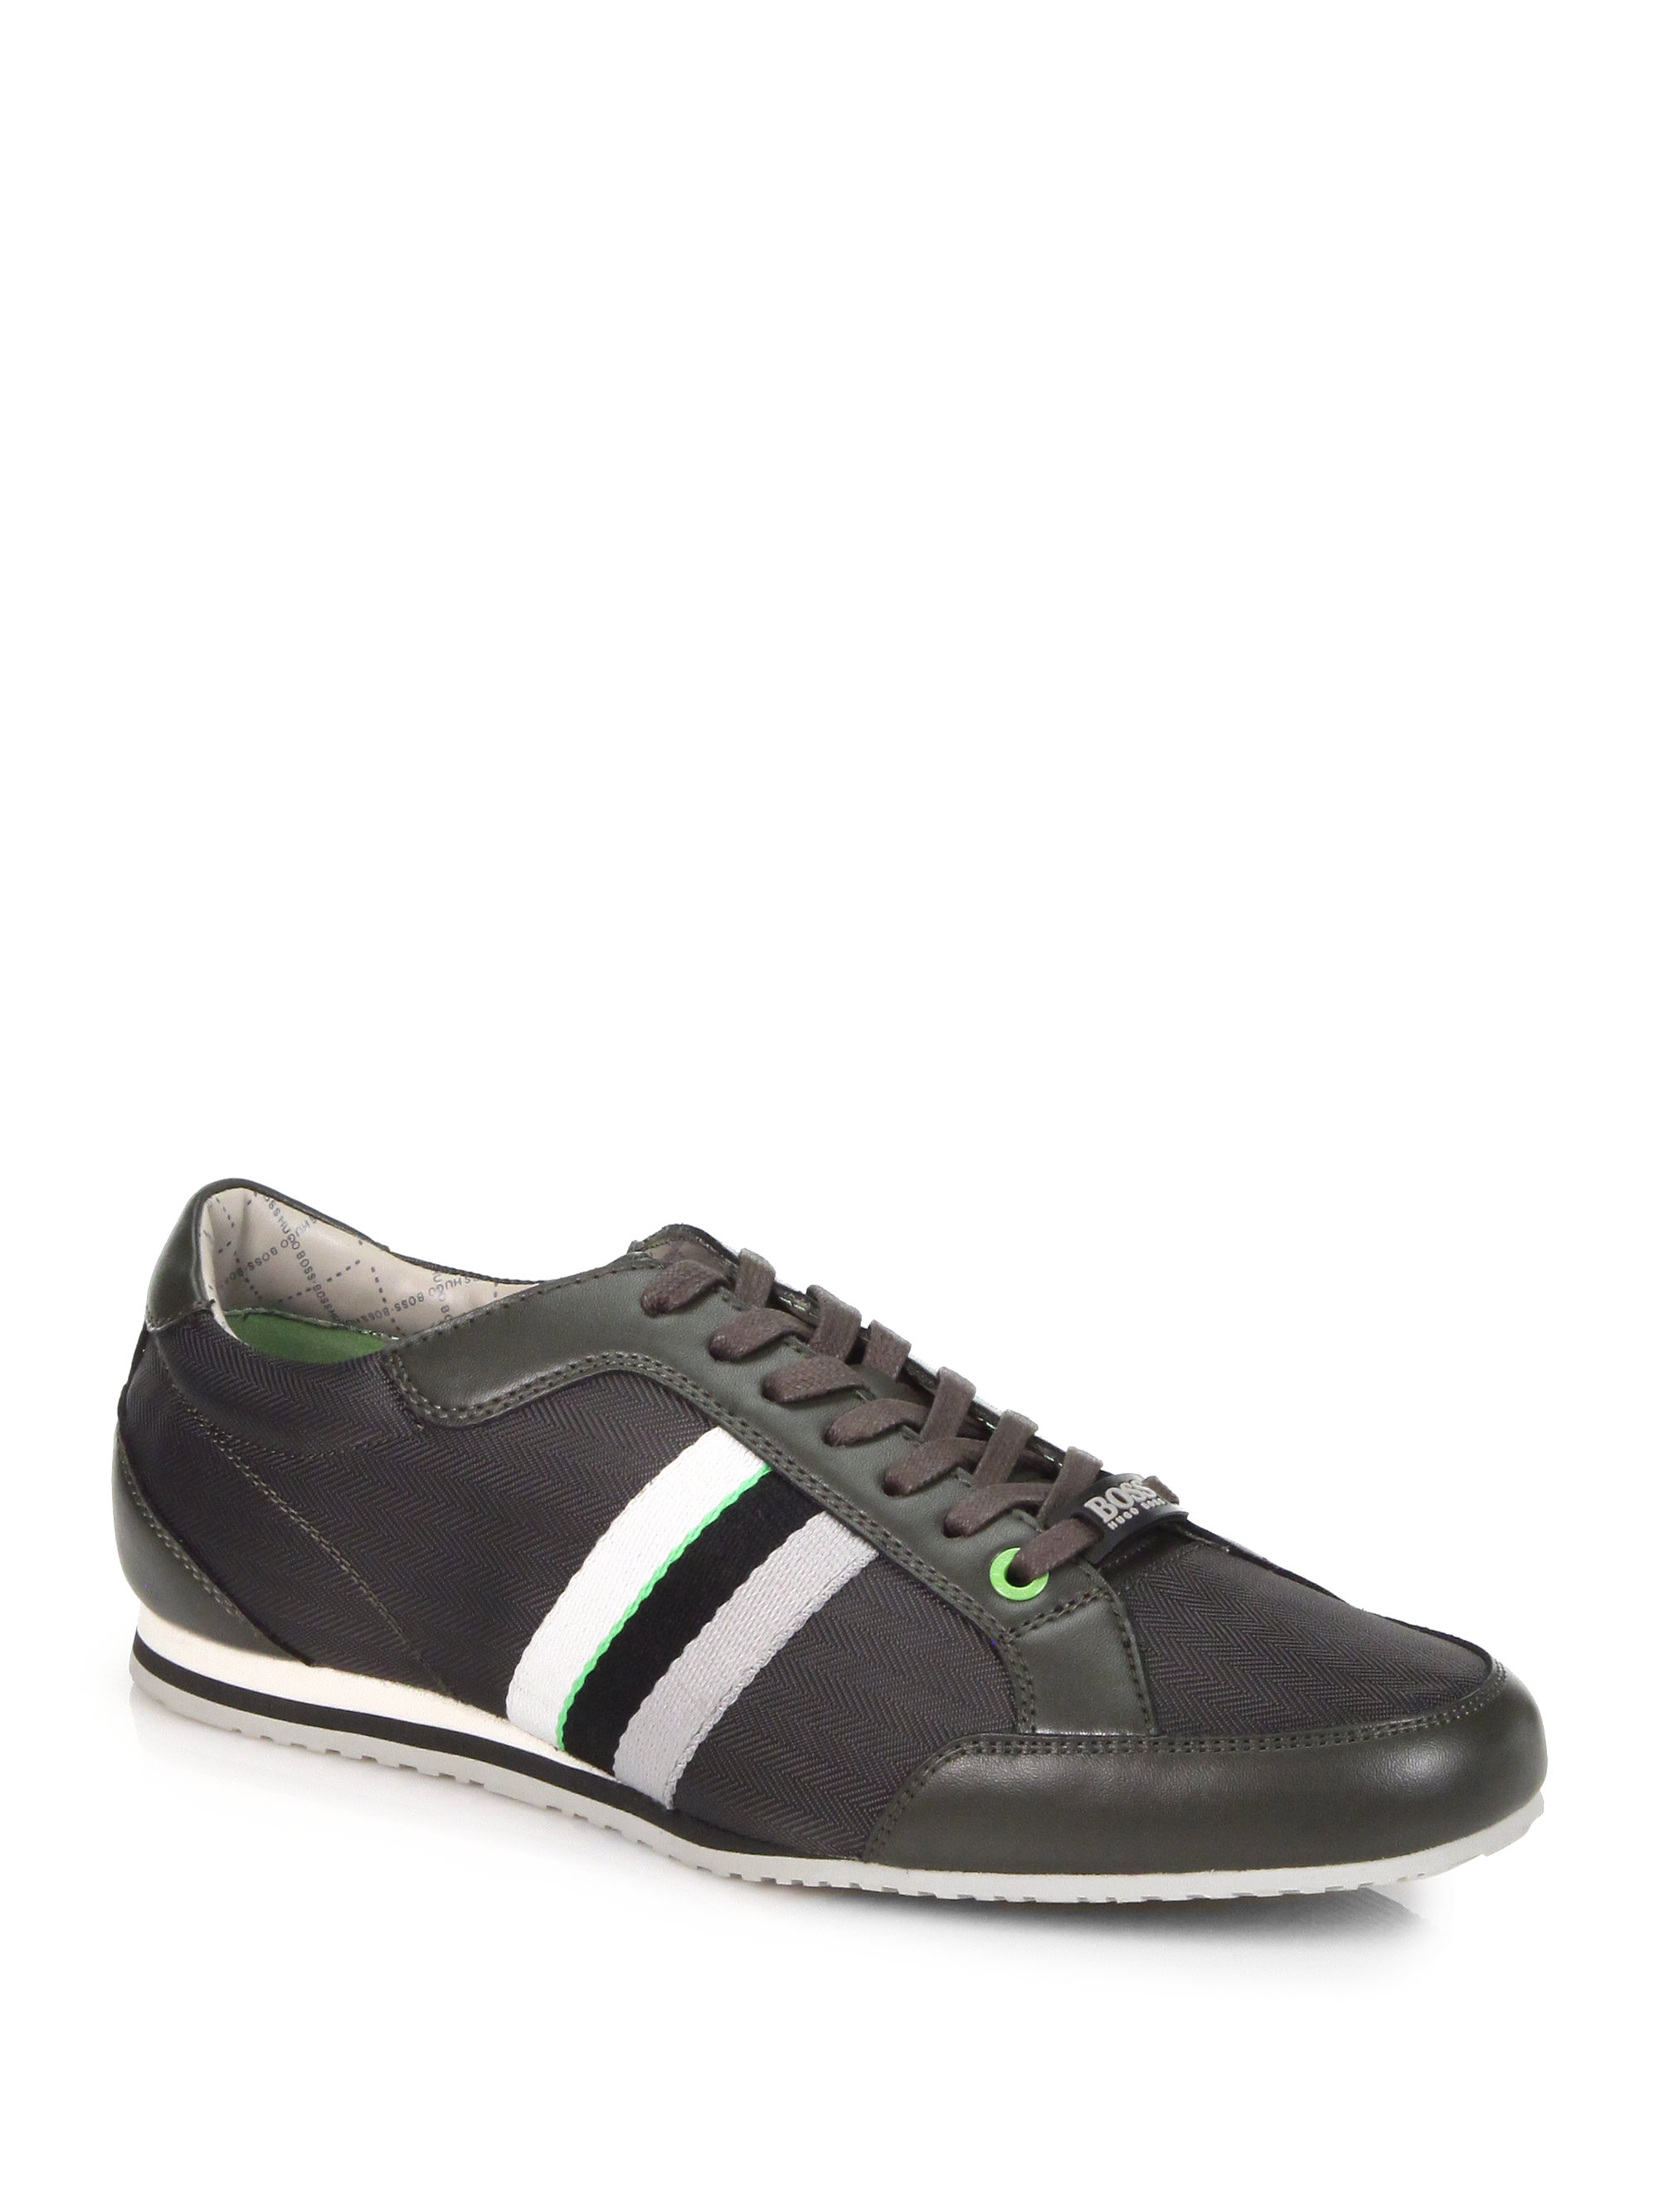 boss green victoire texas sneakers in green for men lyst. Black Bedroom Furniture Sets. Home Design Ideas